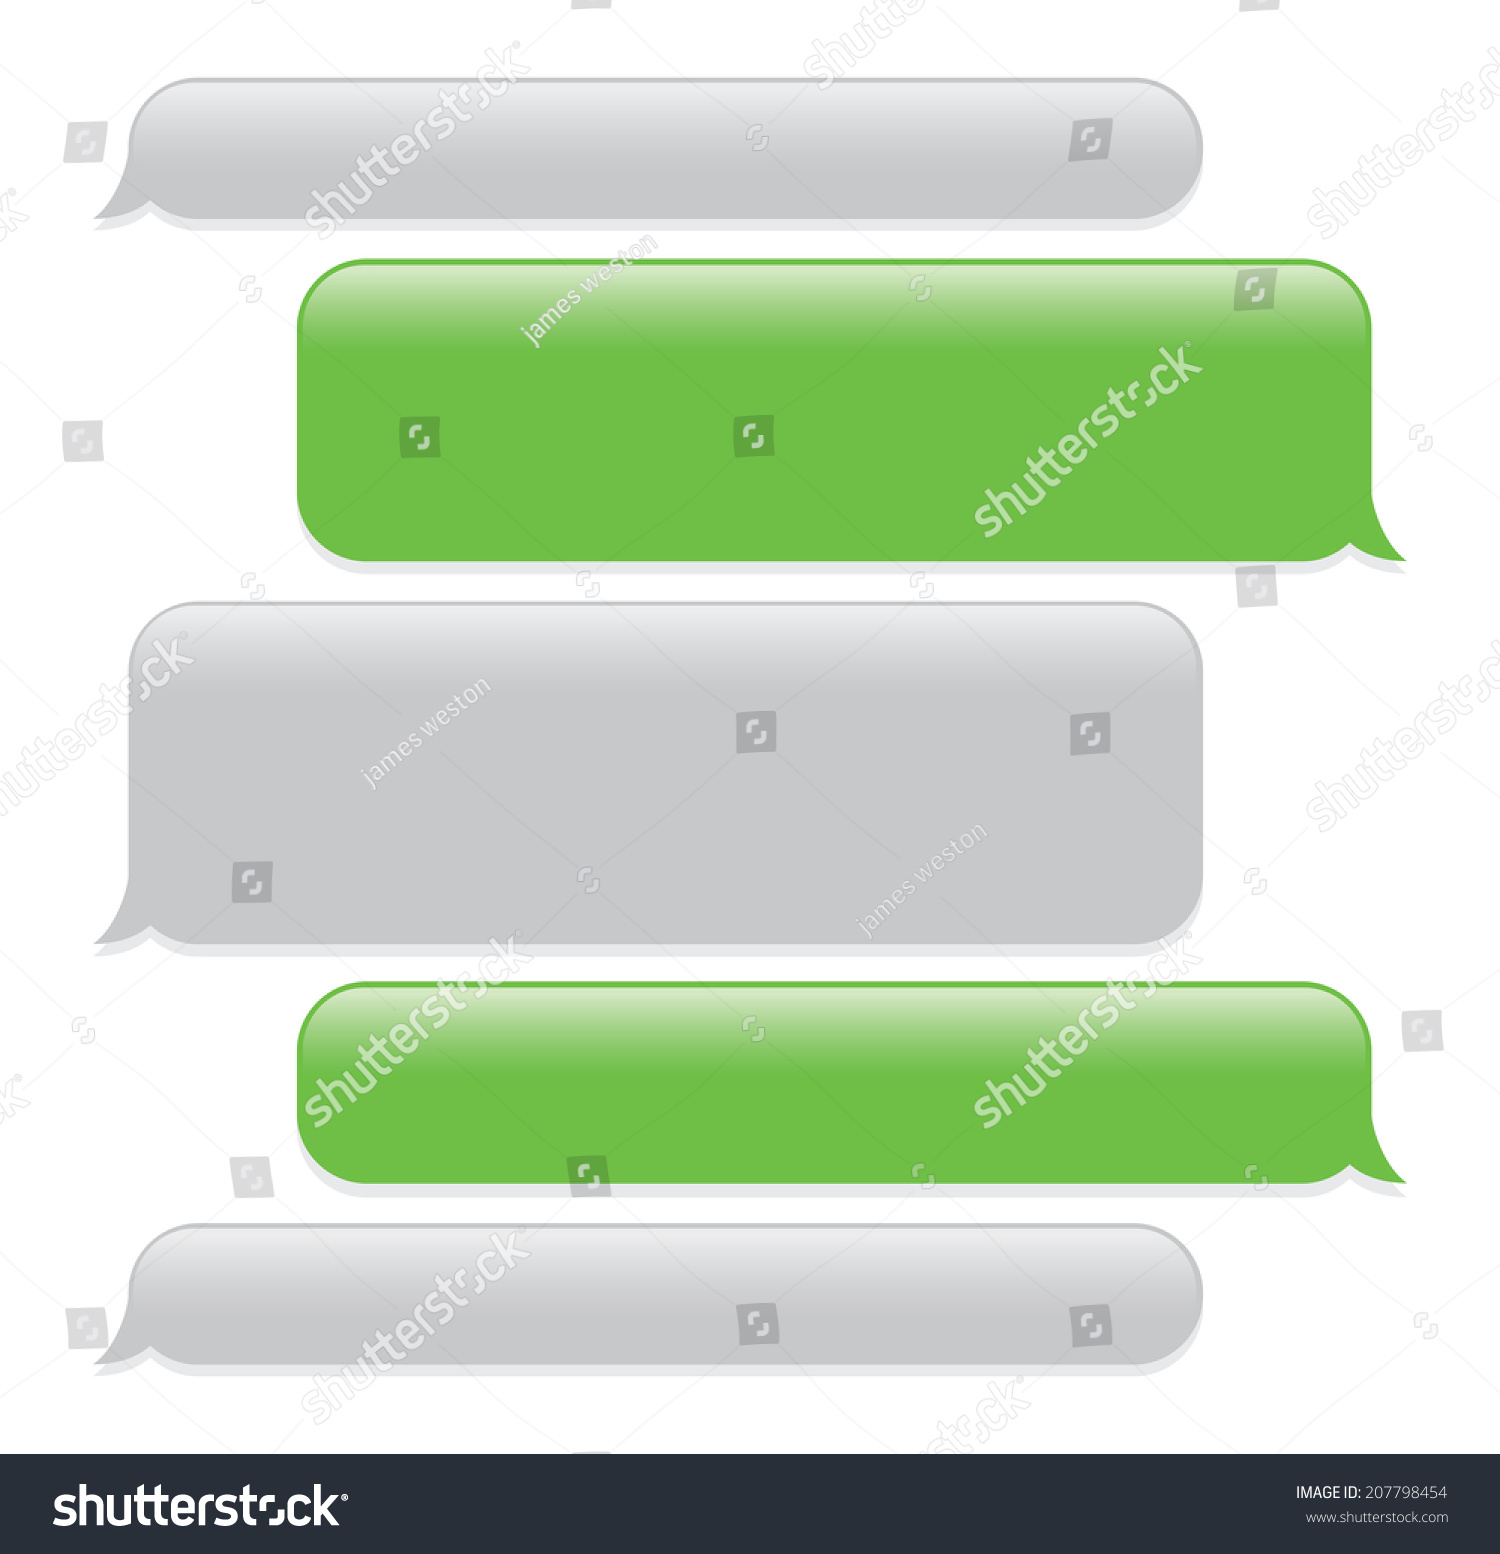 Blank Text Message Bubbles text message stock photos, images ...